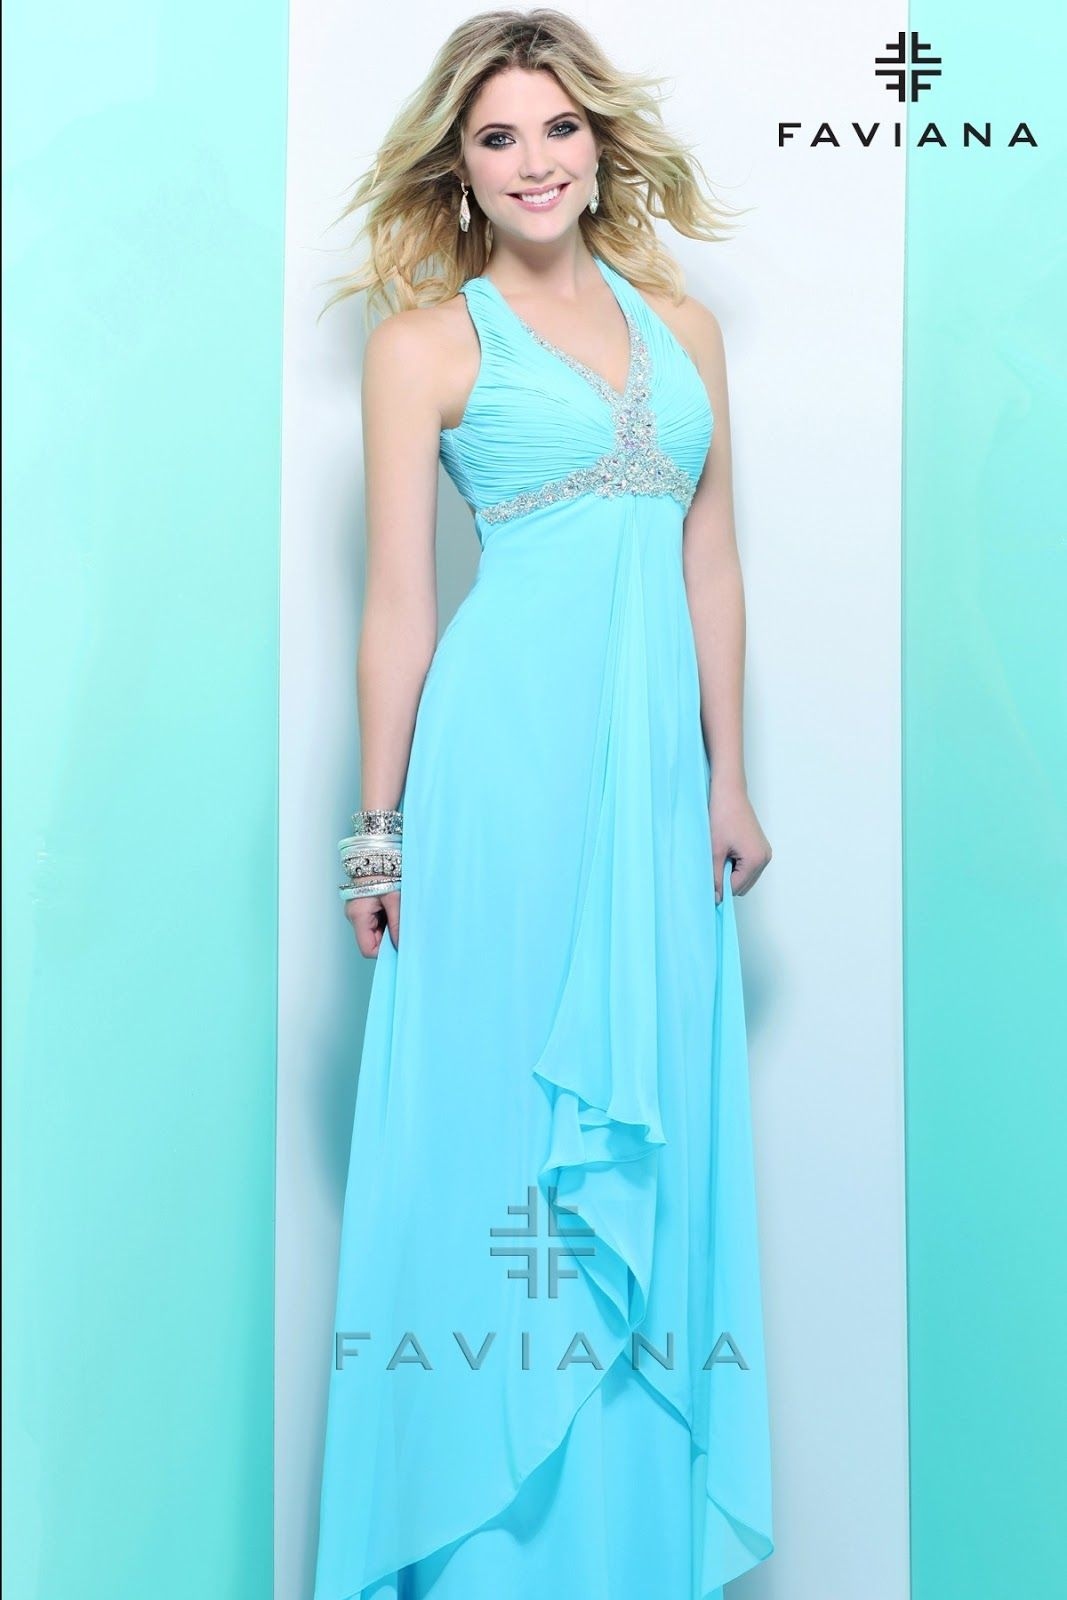 Bridesmaid dresses or prom do you know who she isand what show she